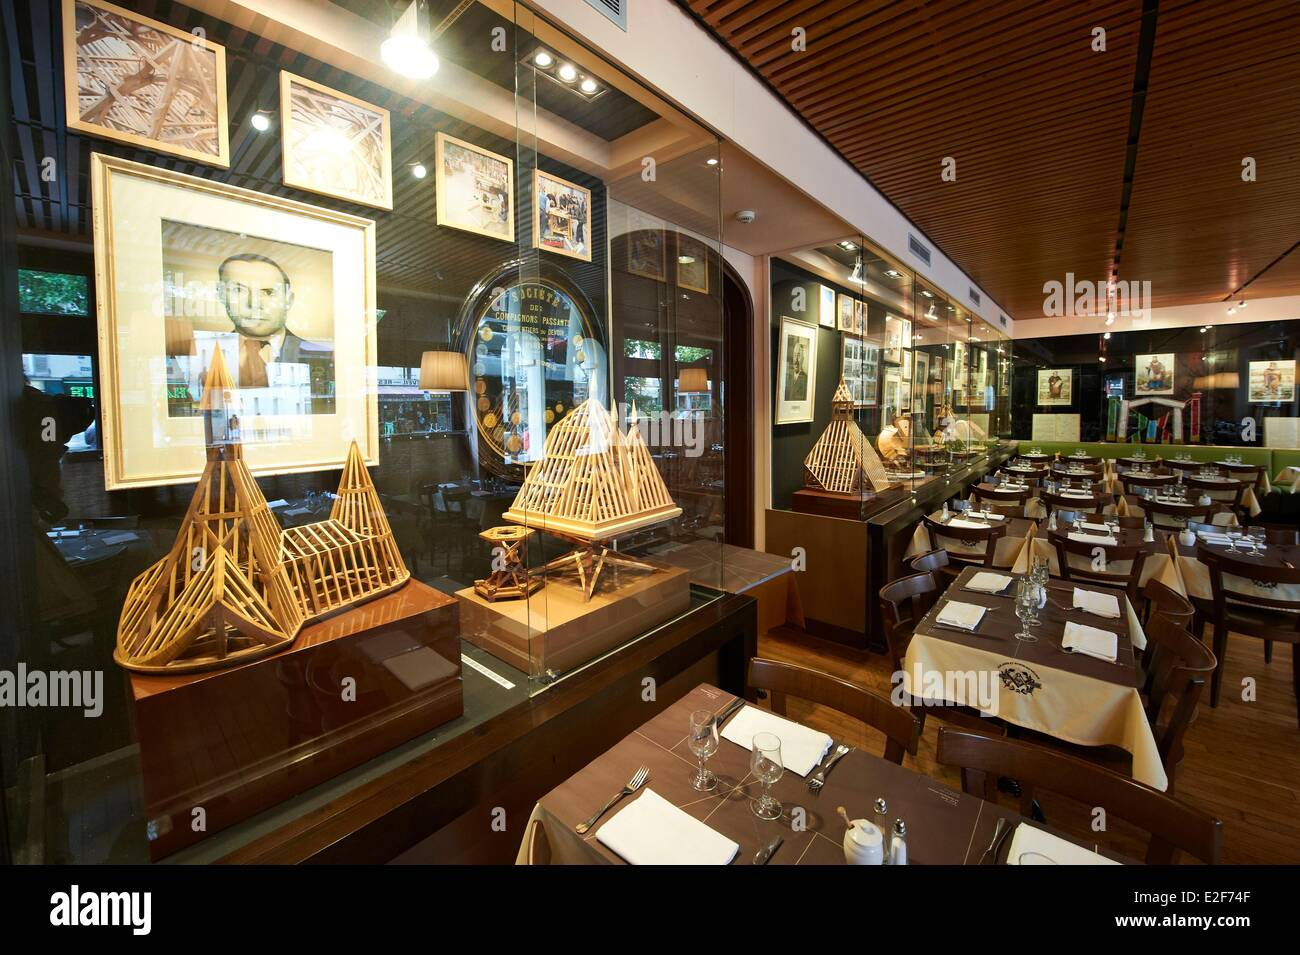 France, Paris, Museum of journeyman carpenters in the 19th, the restaurant, Arts Science Gathered - Stock Image